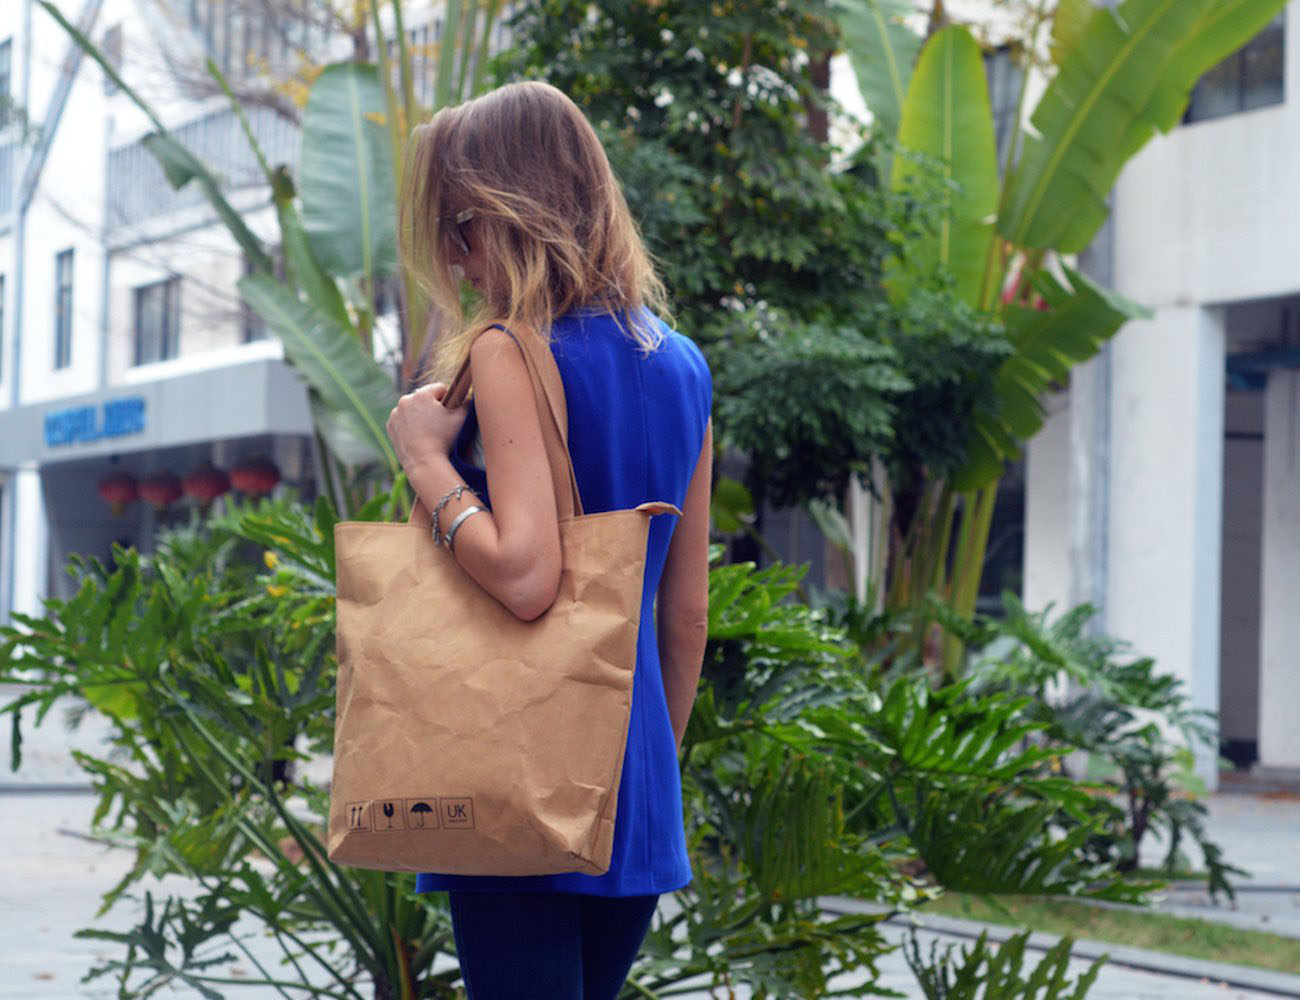 URBAN KRAFT: Strongest Paper Bags & Accessories | Guaranteed